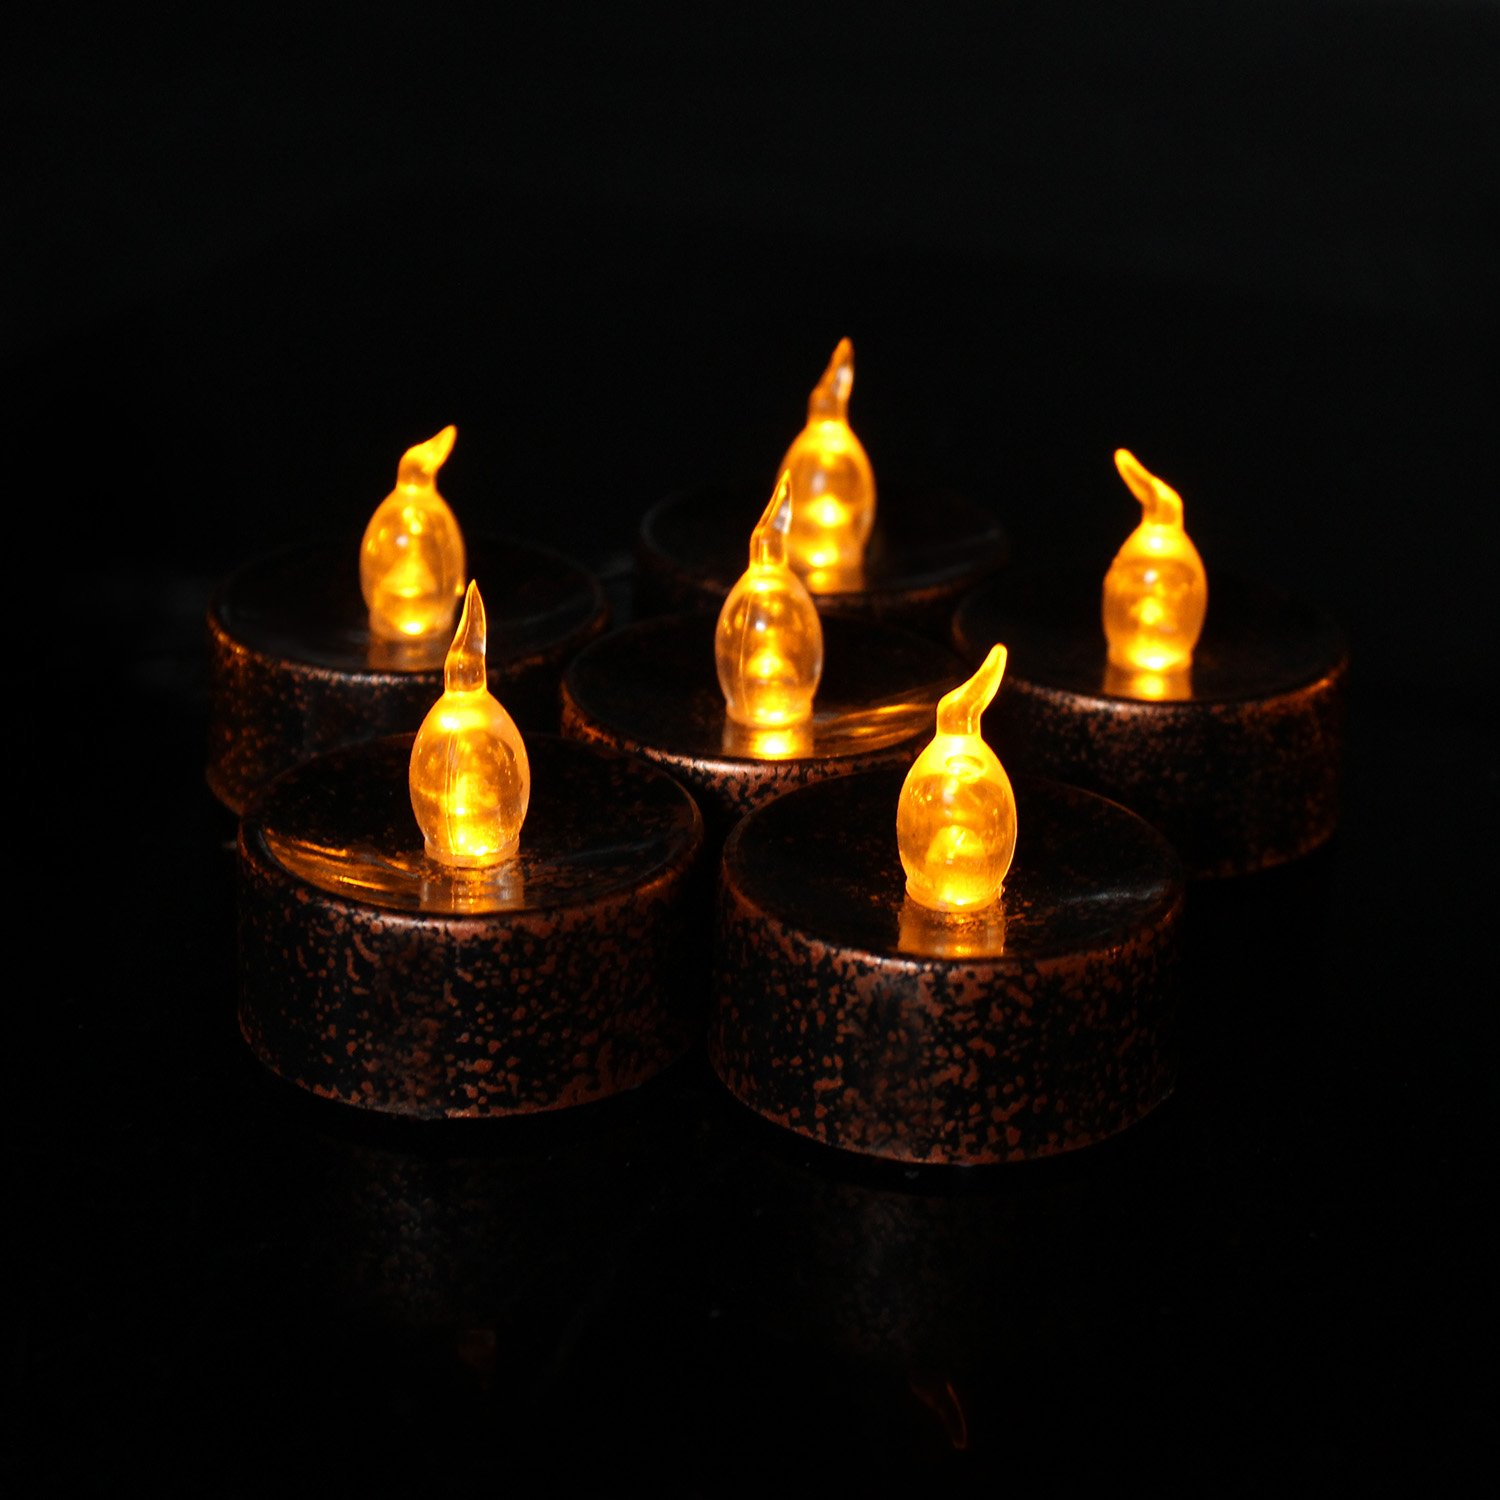 Halloween Flickering Candles, Led Battery Operated Black Fake Electric Small Plastic Flameless Dropless Outdoor Indoor Home Party Pumpkin Decorative Halloween Decoration Candle Supplies Ideas, 12PCS